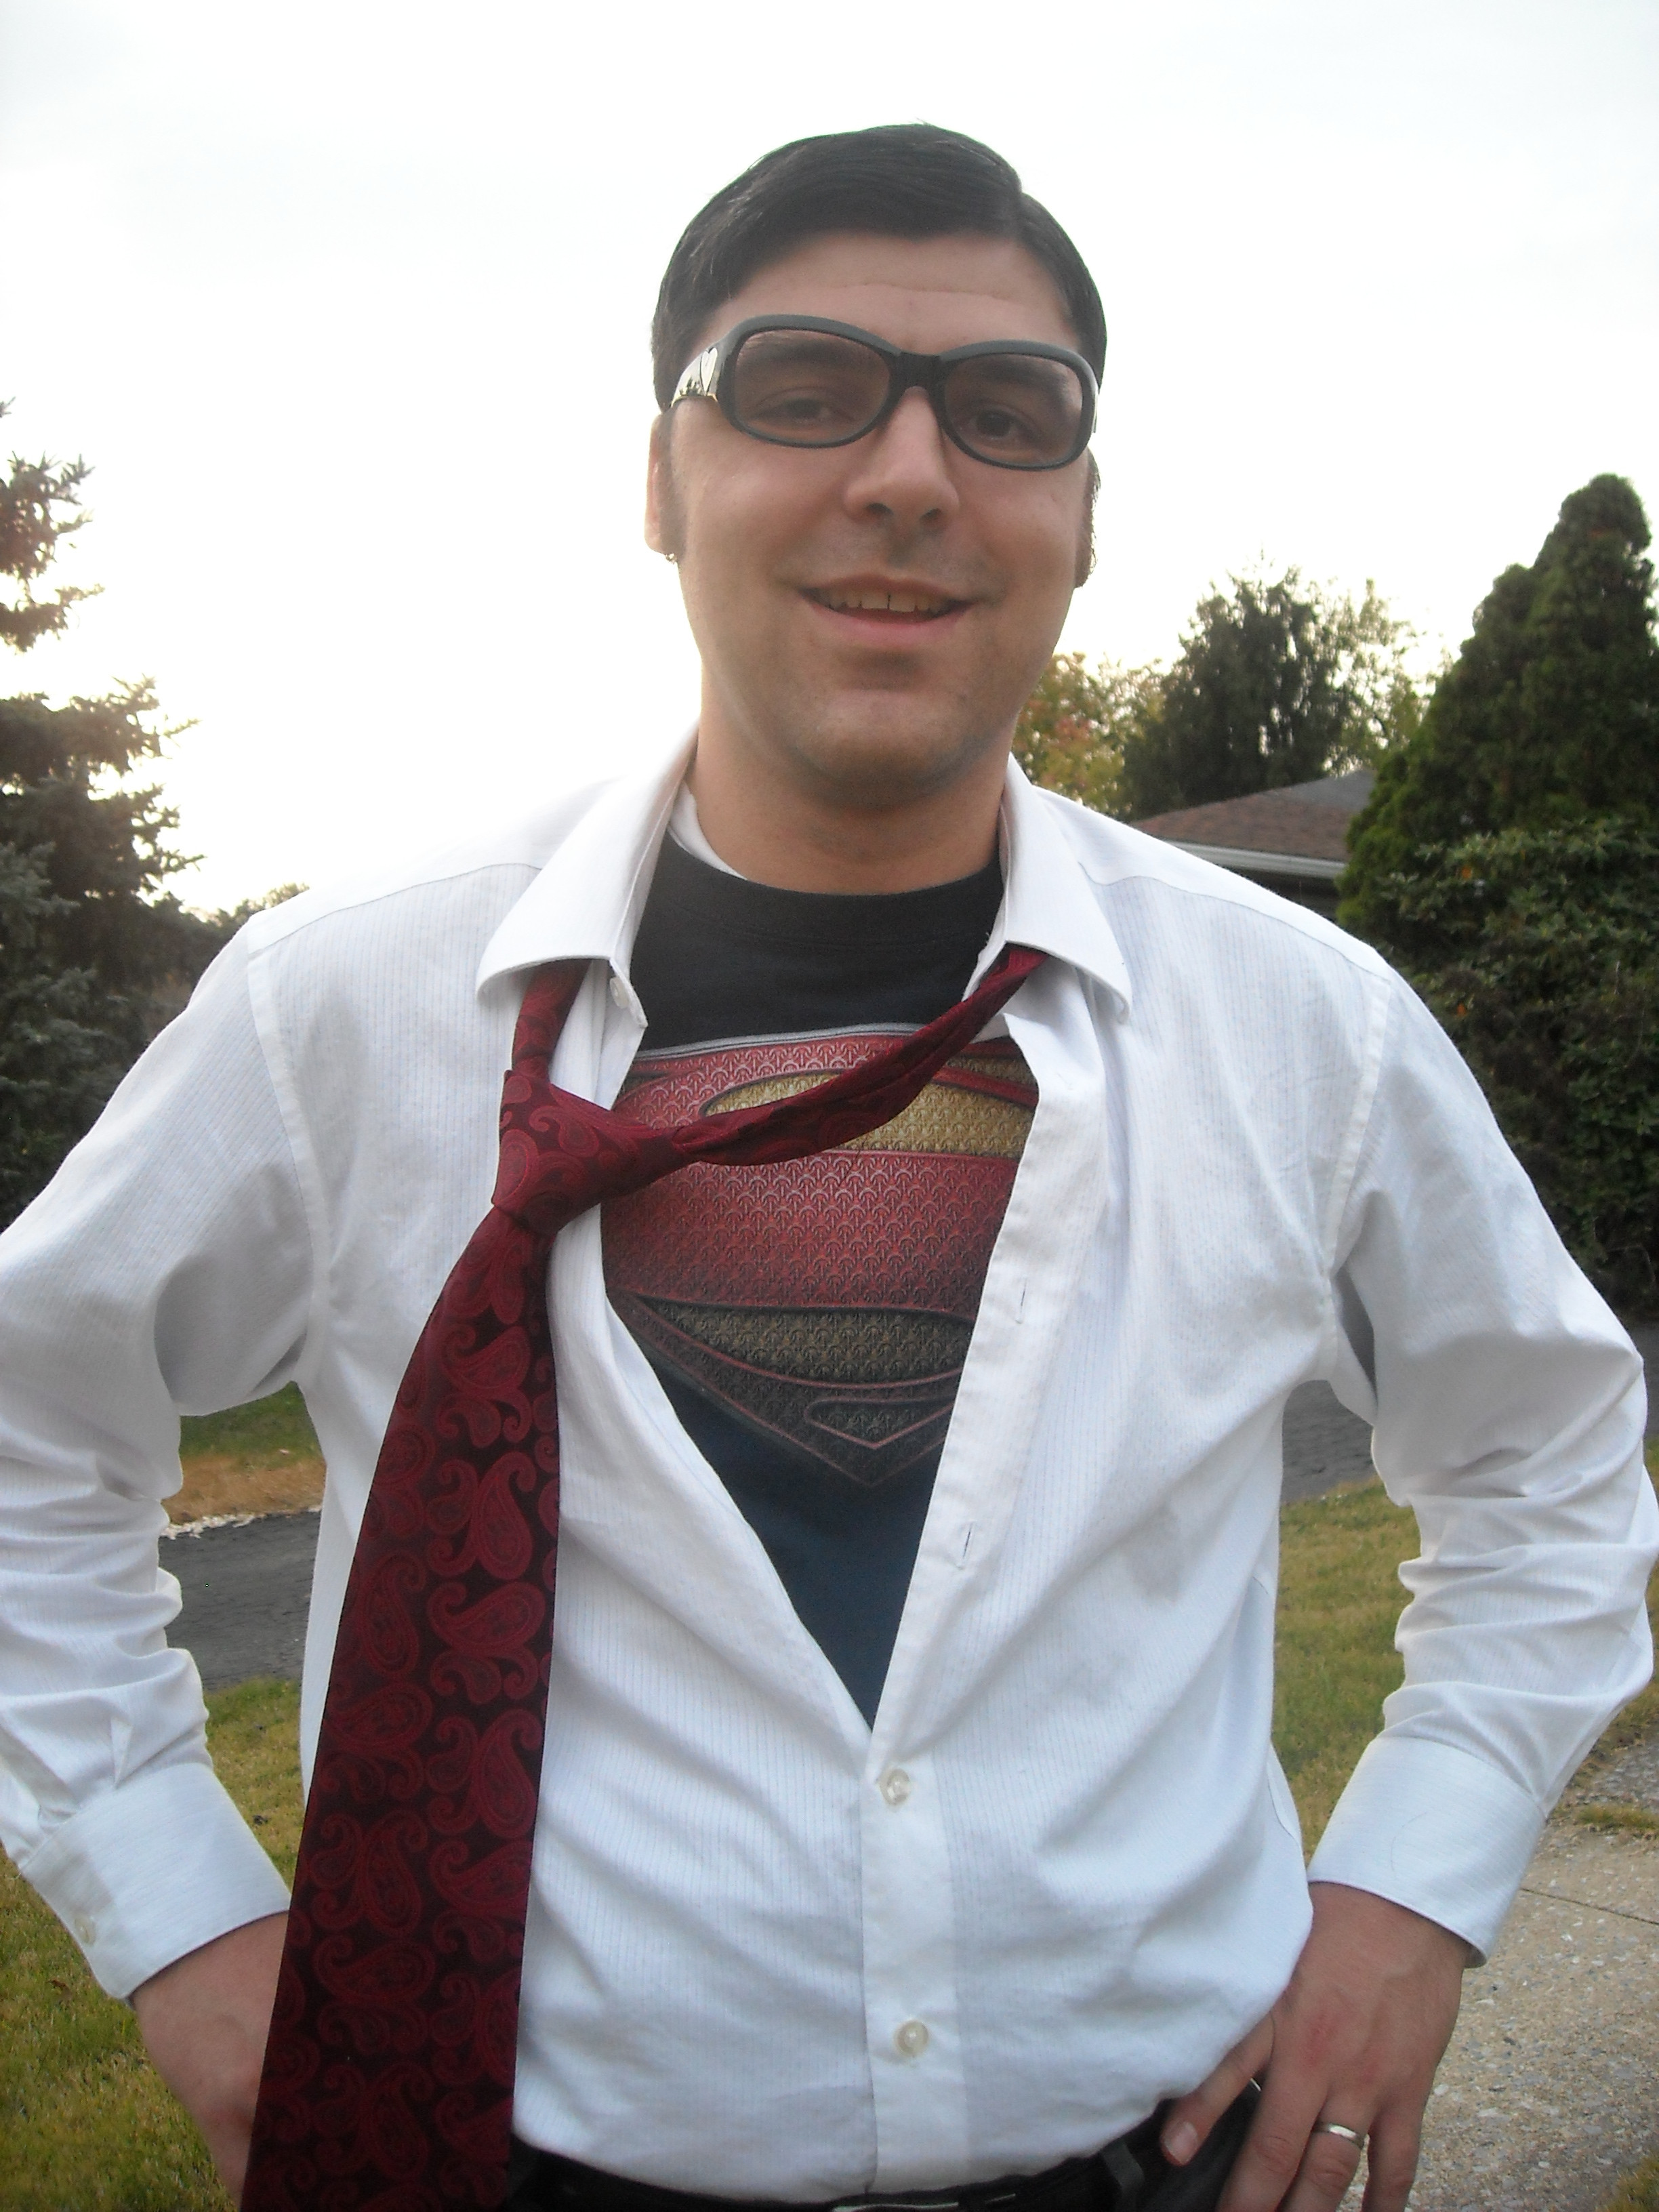 Best ideas about DIY Halloween Costumes Male . Save or Pin DIY Easy Halloween Costume Ideas for Men Mommysavers Now.